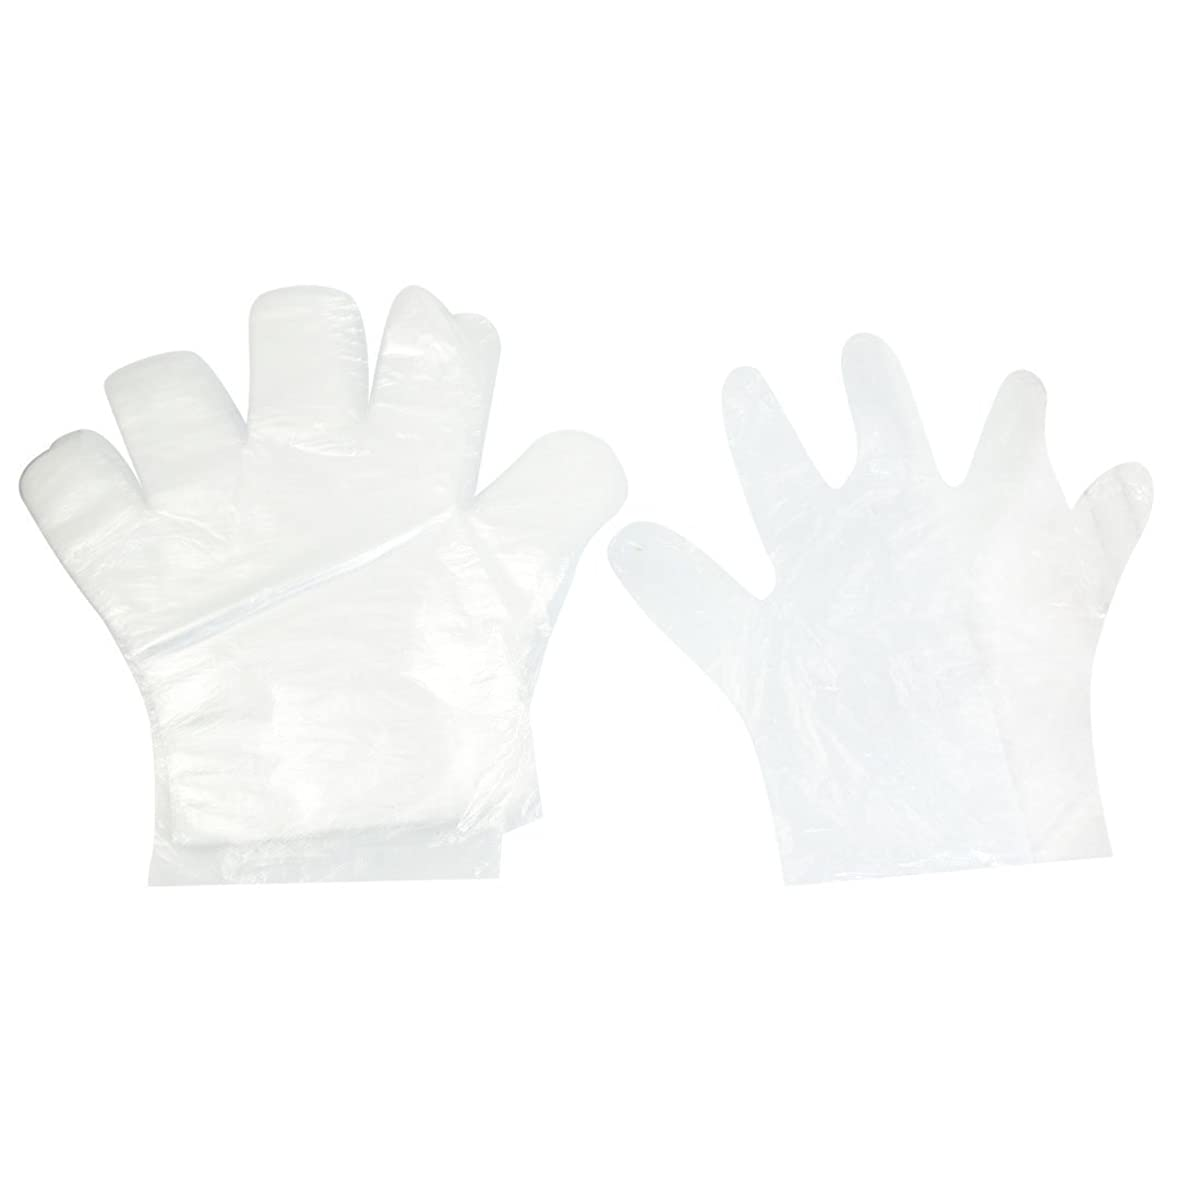 uxcell? Plastic Cooking Food Hand Protective Disposable Gloves 50Pcs Clear